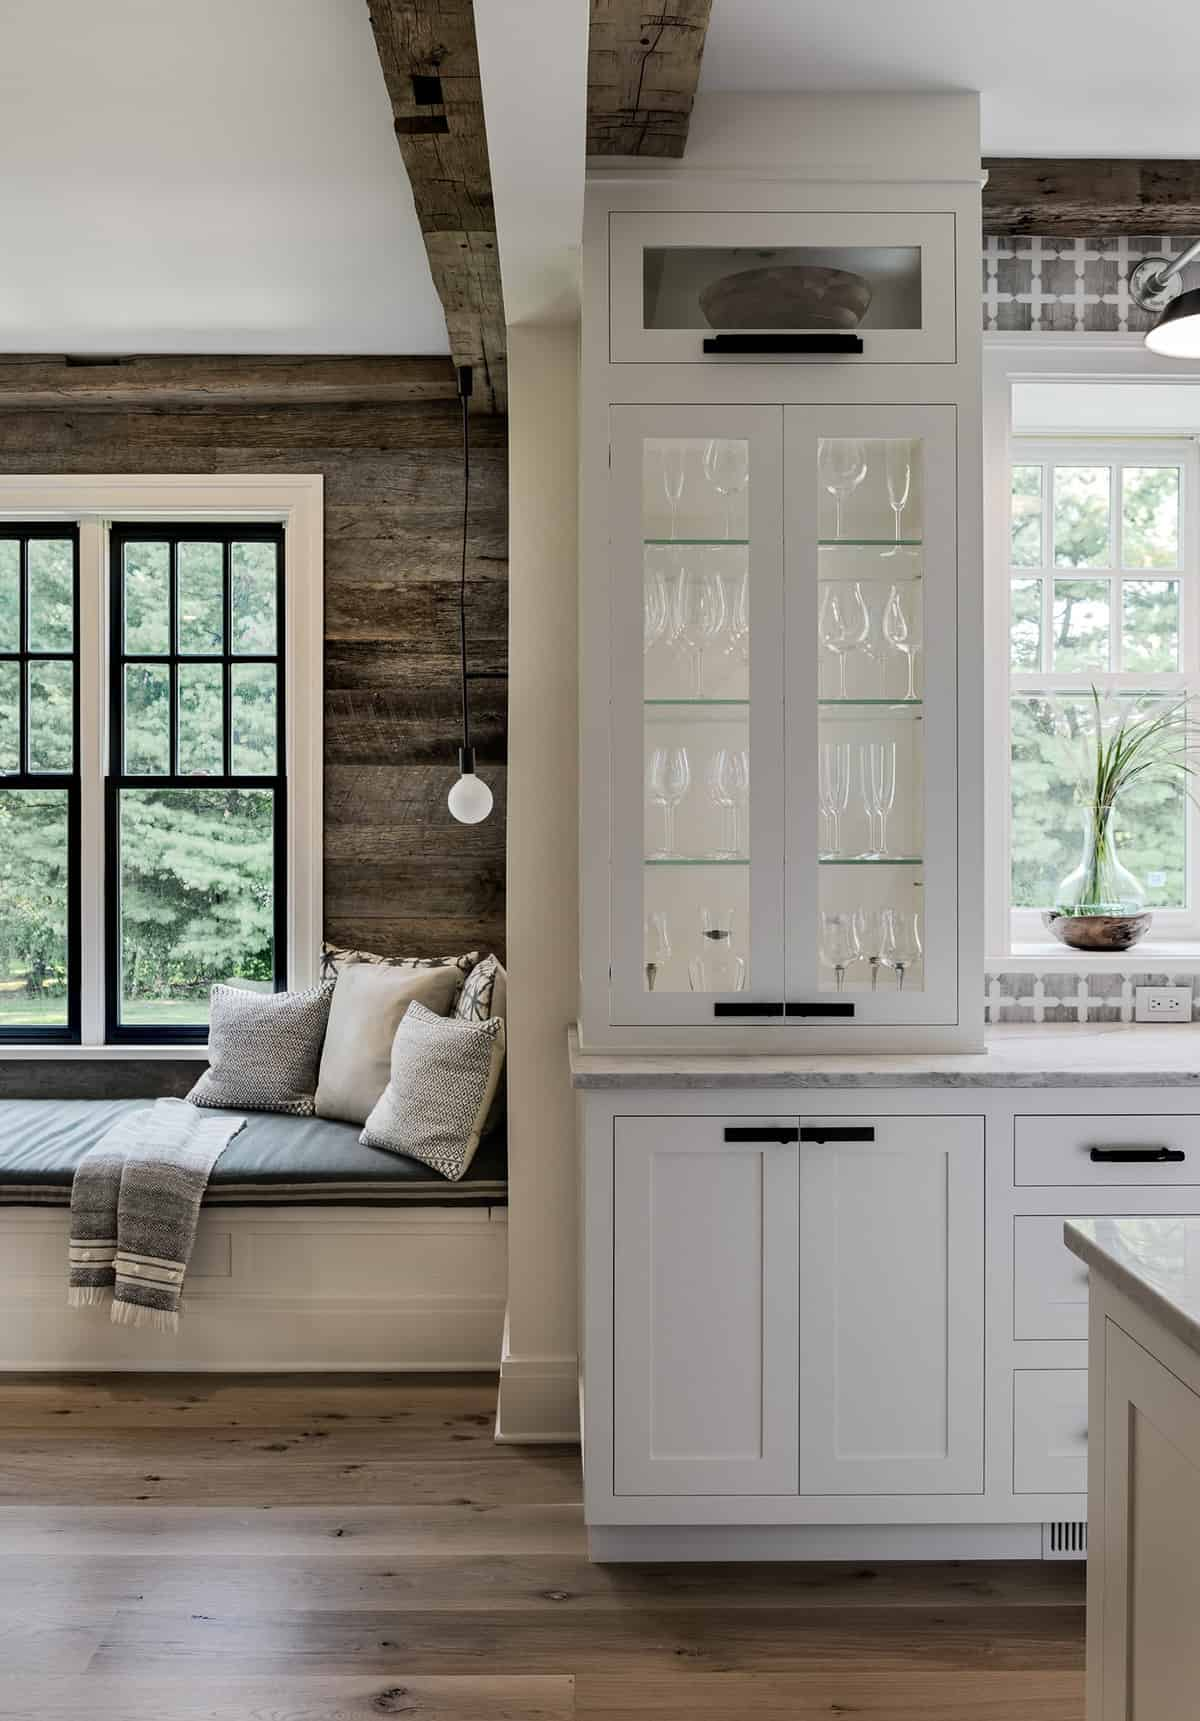 interior-renovation-transitional-kitchen-with-window-seat